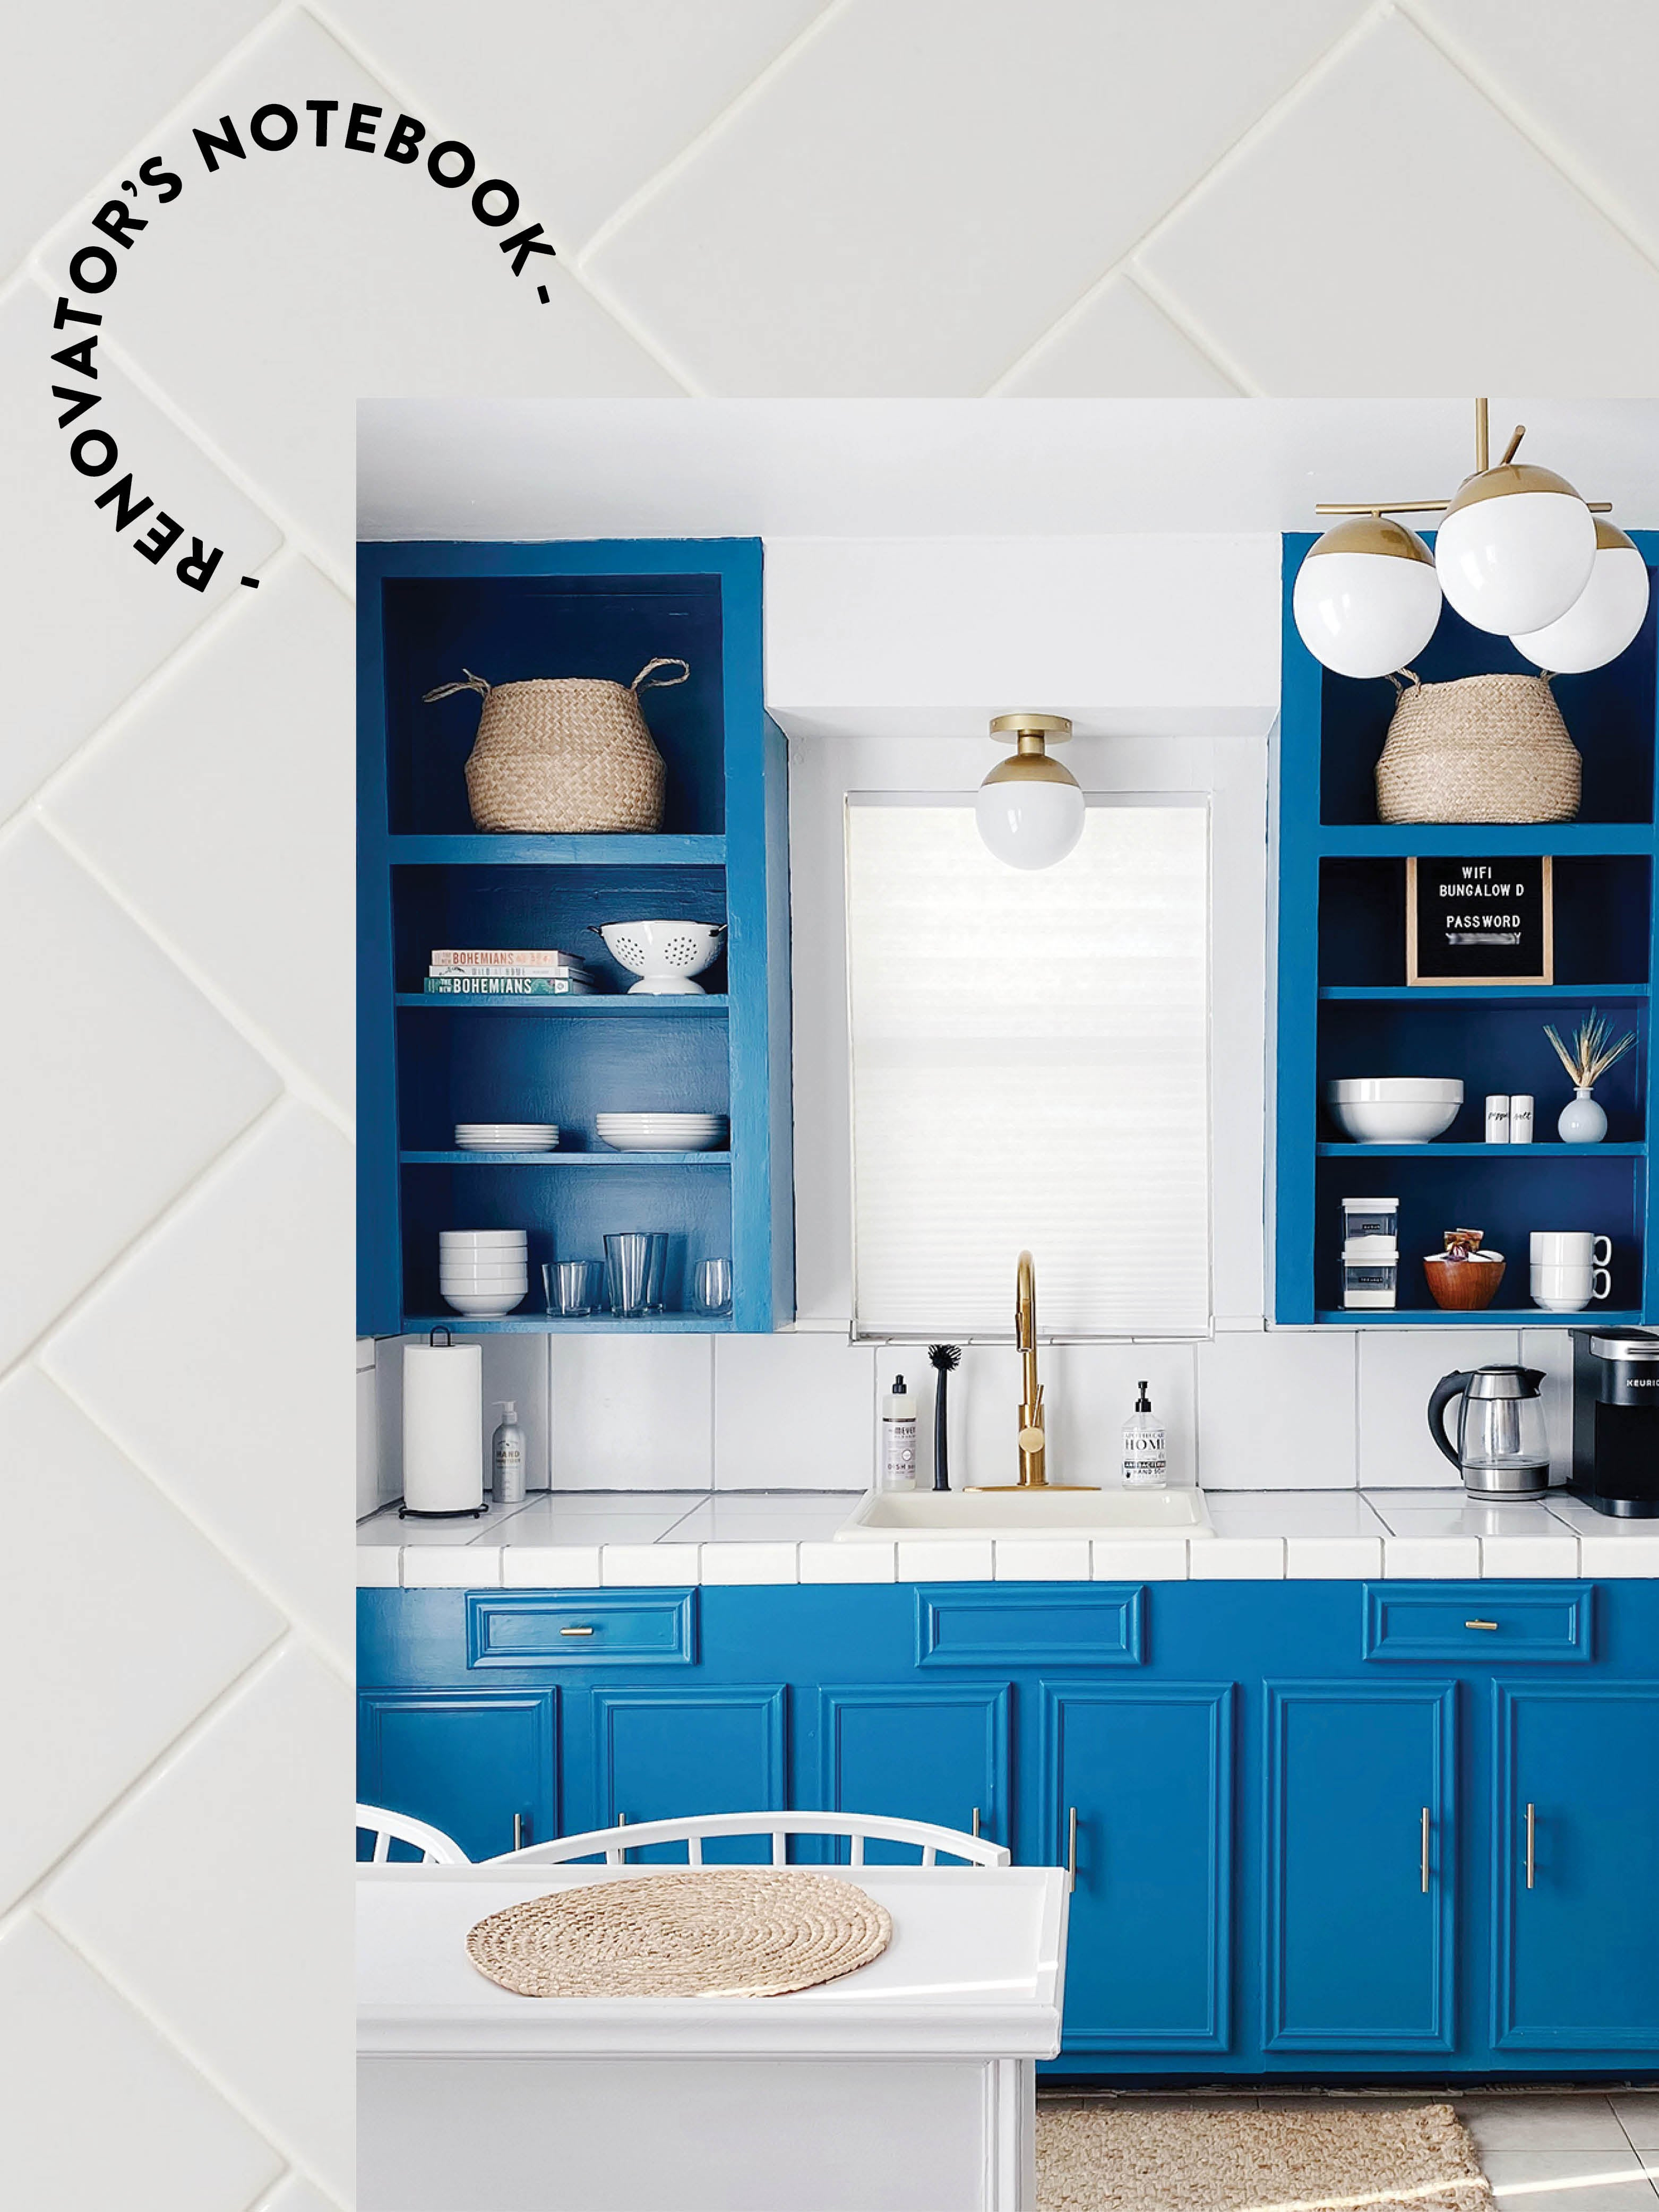 All the Mistakes We Made During Our $2.5K DIY Kitchen Remodel